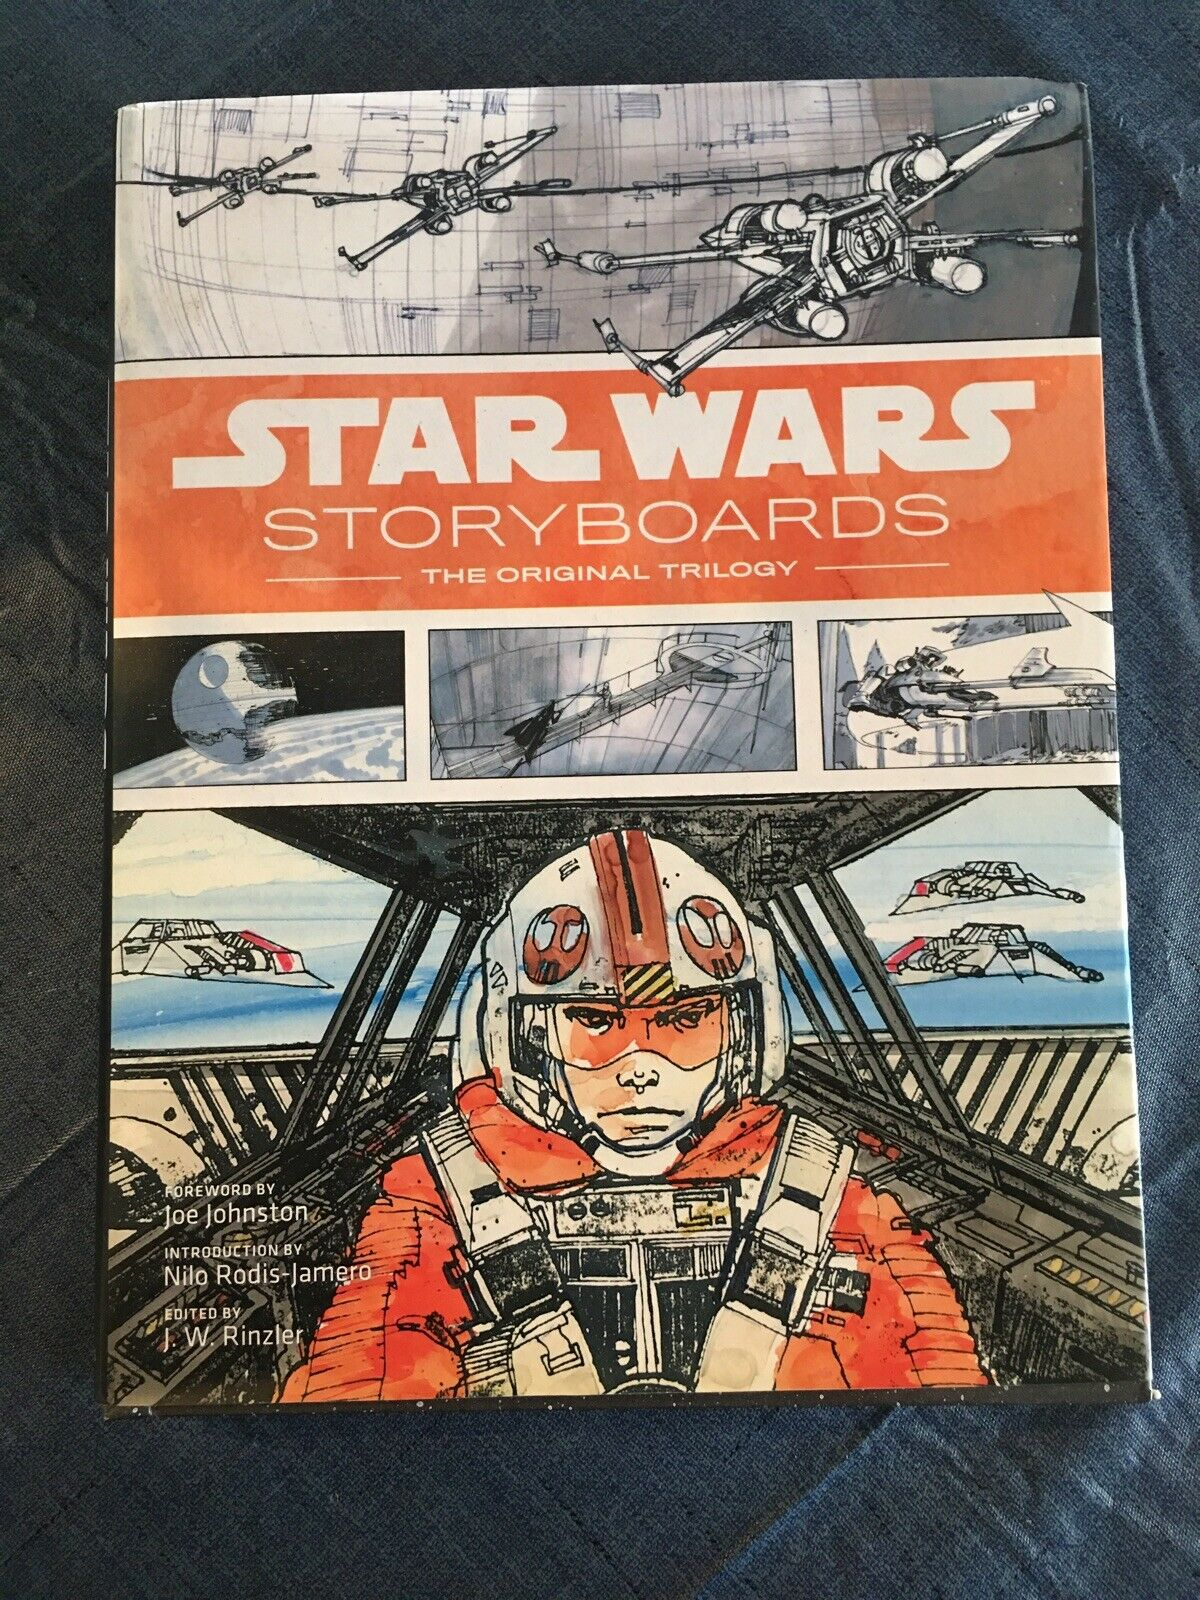 Star Wars Storyboards By Lucasfilm Ltd Staff 2014 Hardcover For Sale Online Ebay